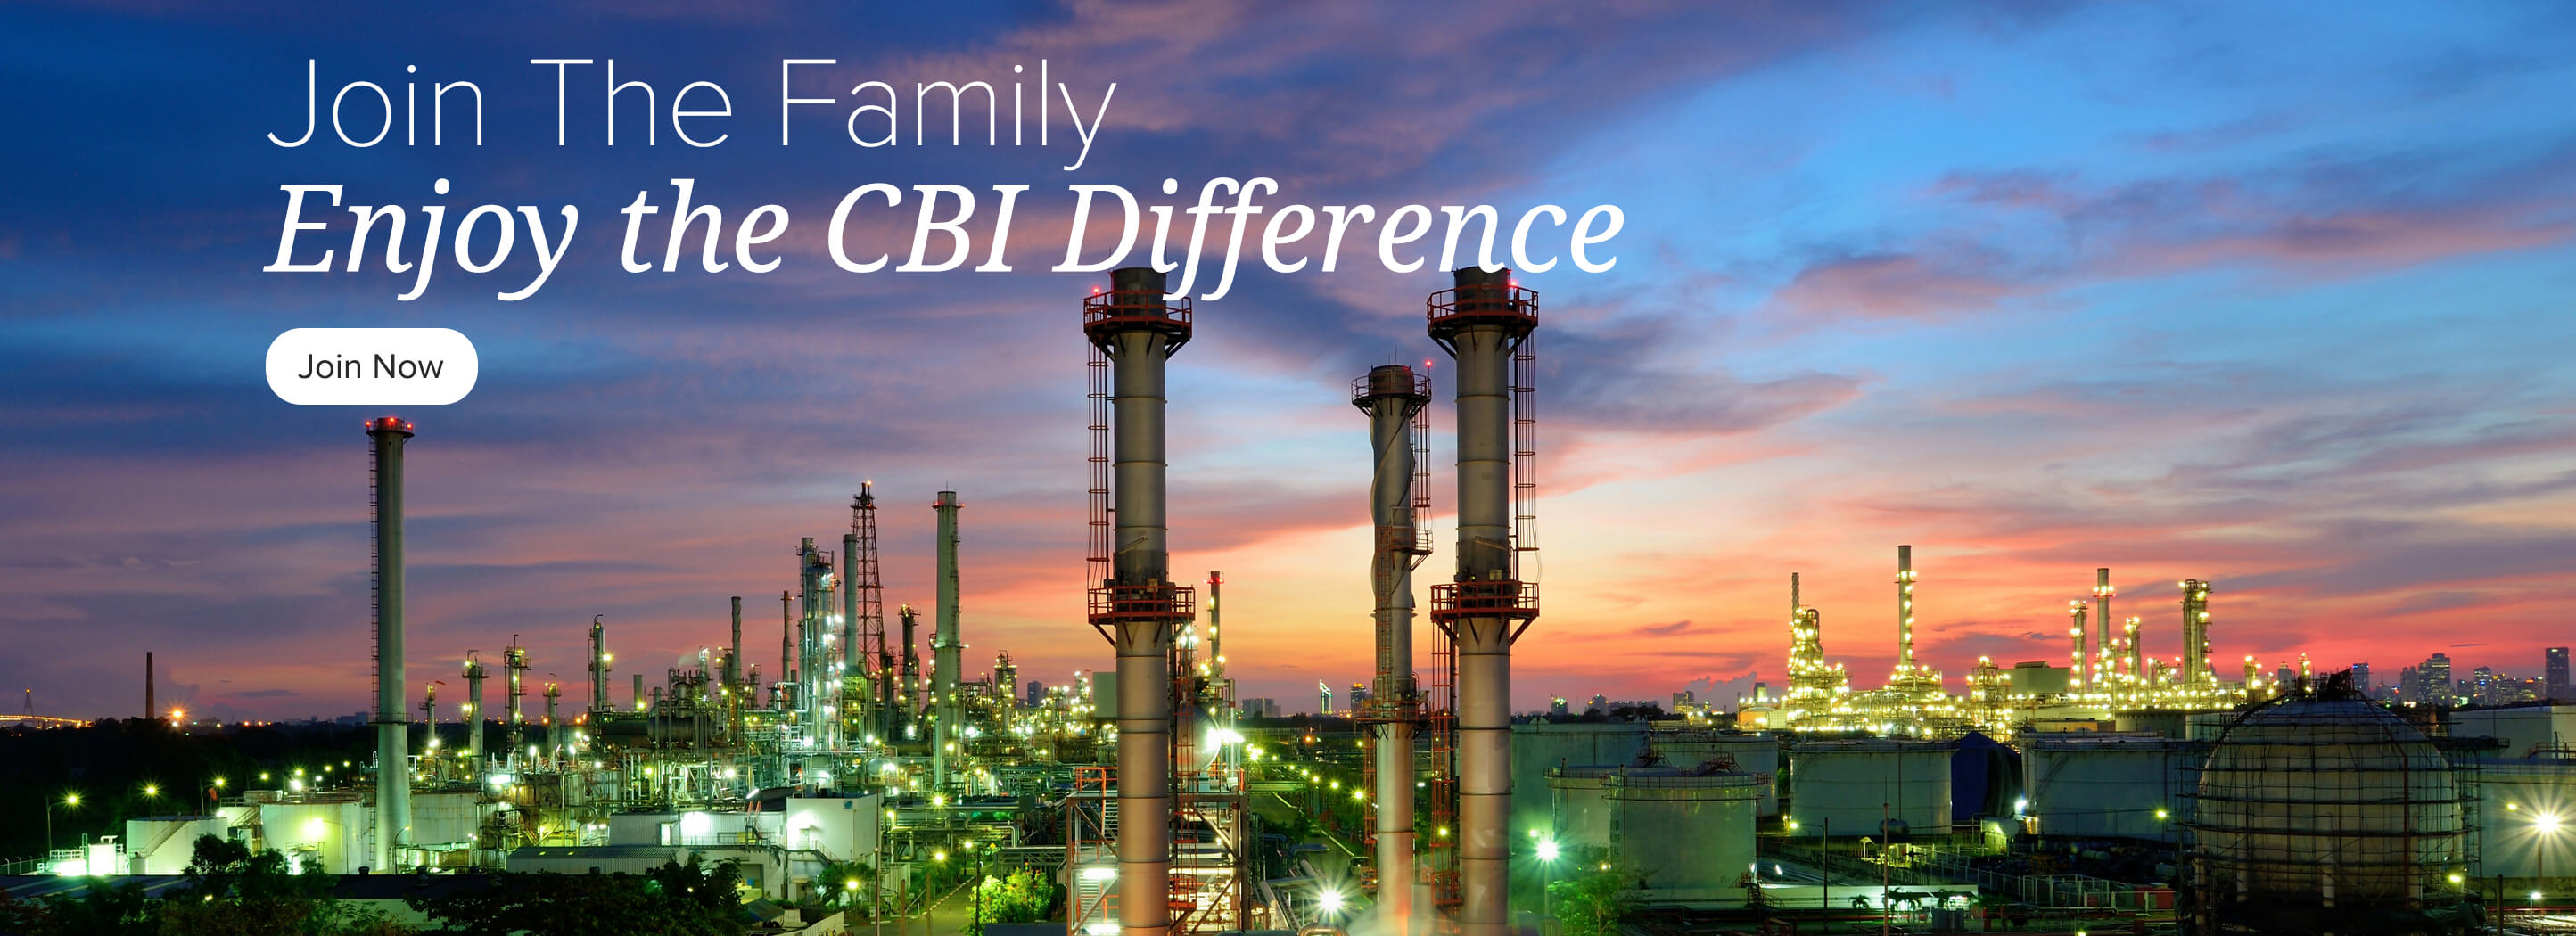 Join The Family. Enjoy the CBI Difference. Join Now.